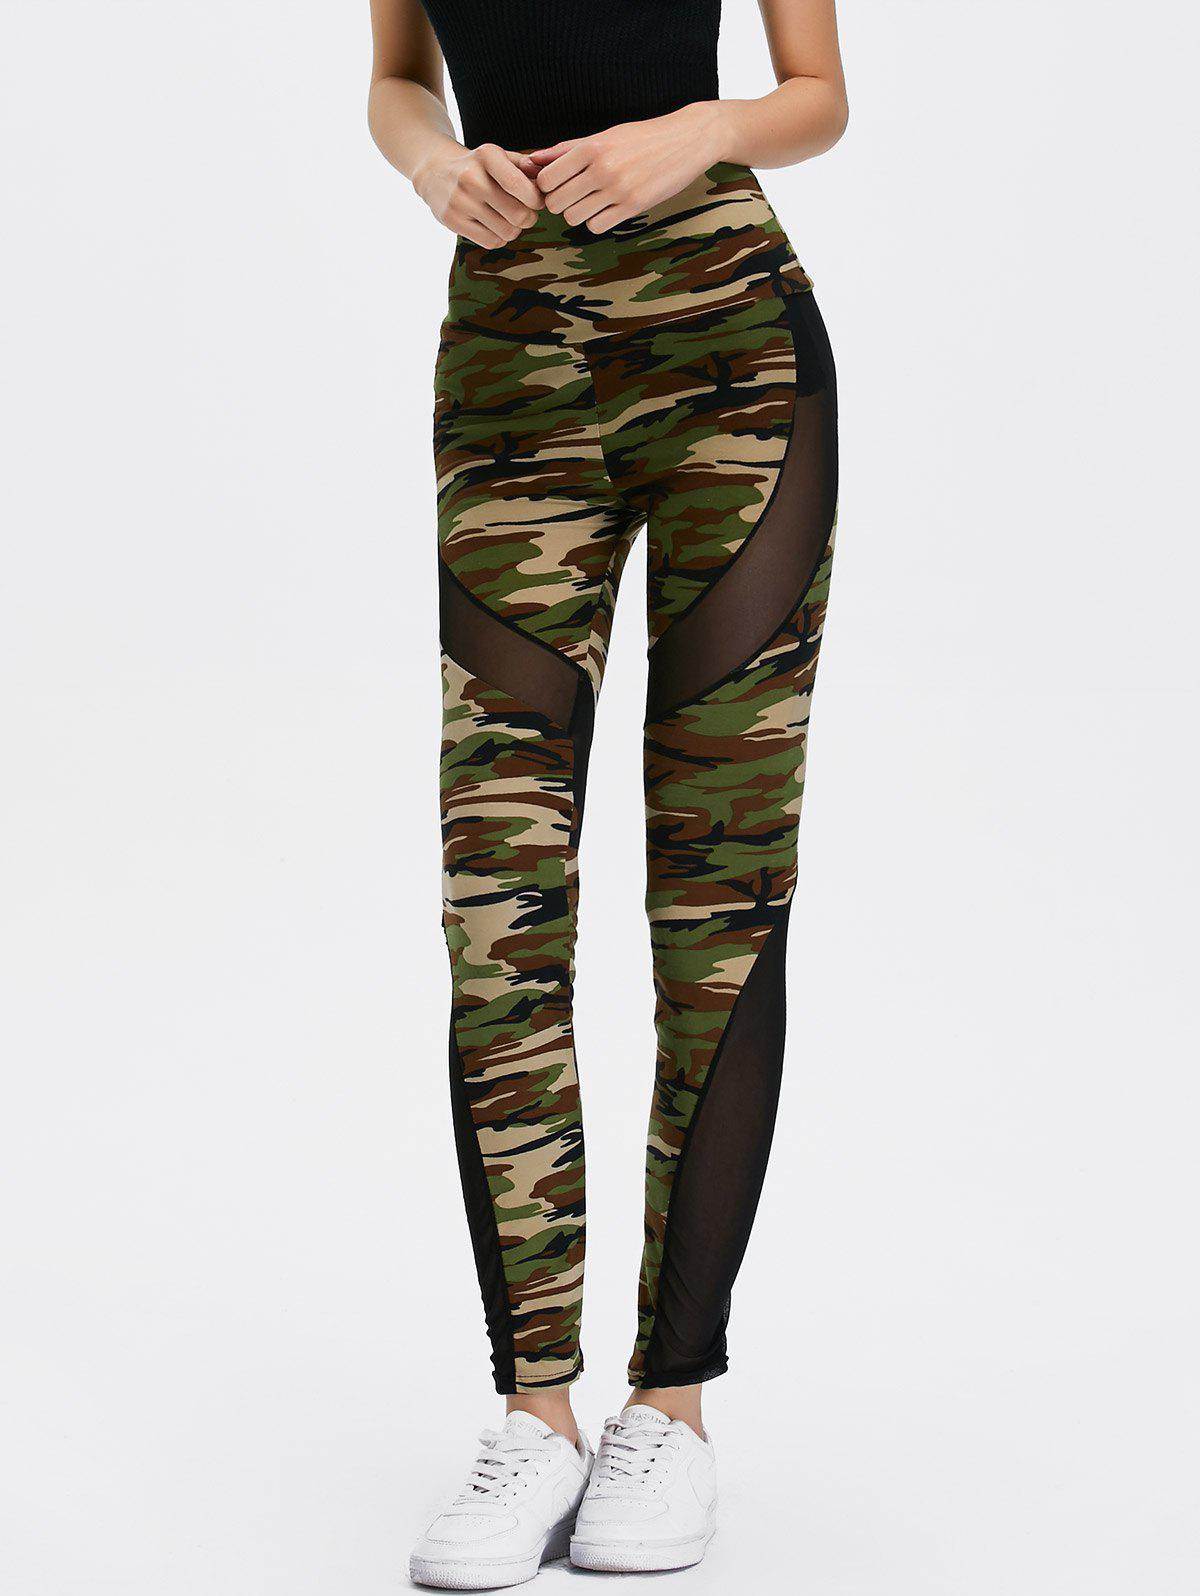 Mesh Insert Camo High Waist Leggings side panel mesh insert camo leggings